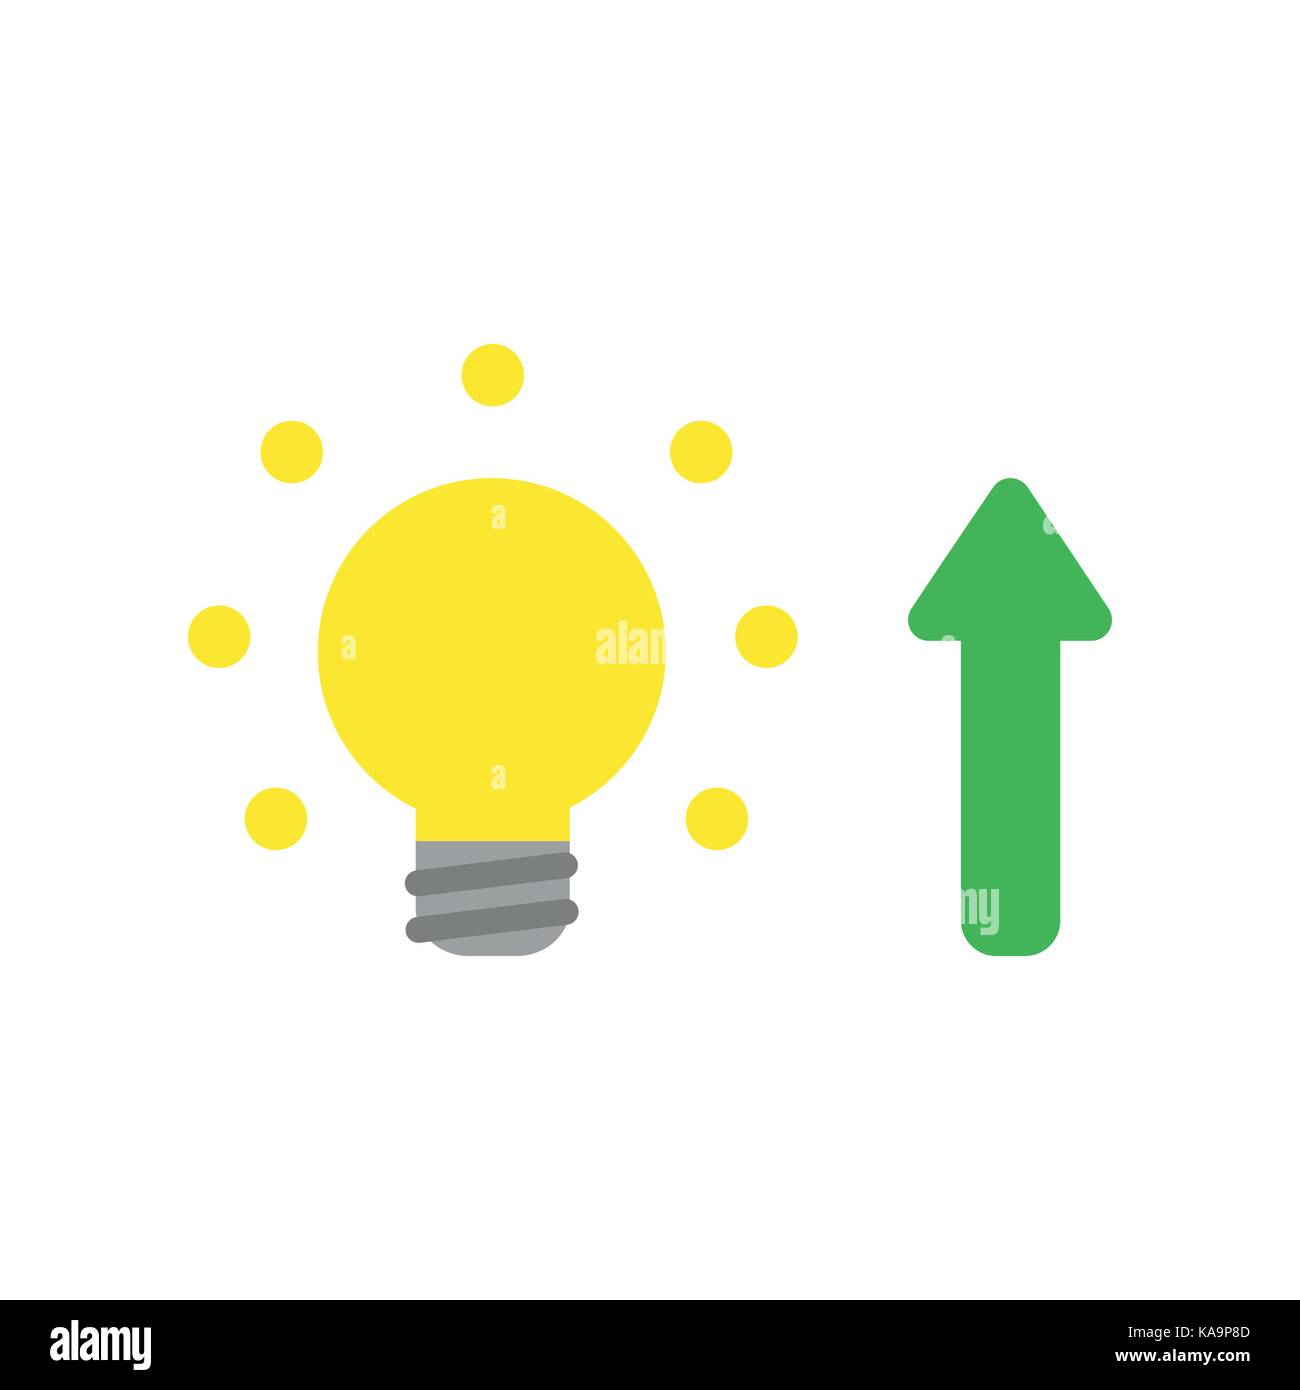 Flat design style vector illustration concept of yellow glowing flat design style vector illustration concept of yellow glowing light bulb with green arrow symbol icon buycottarizona Choice Image